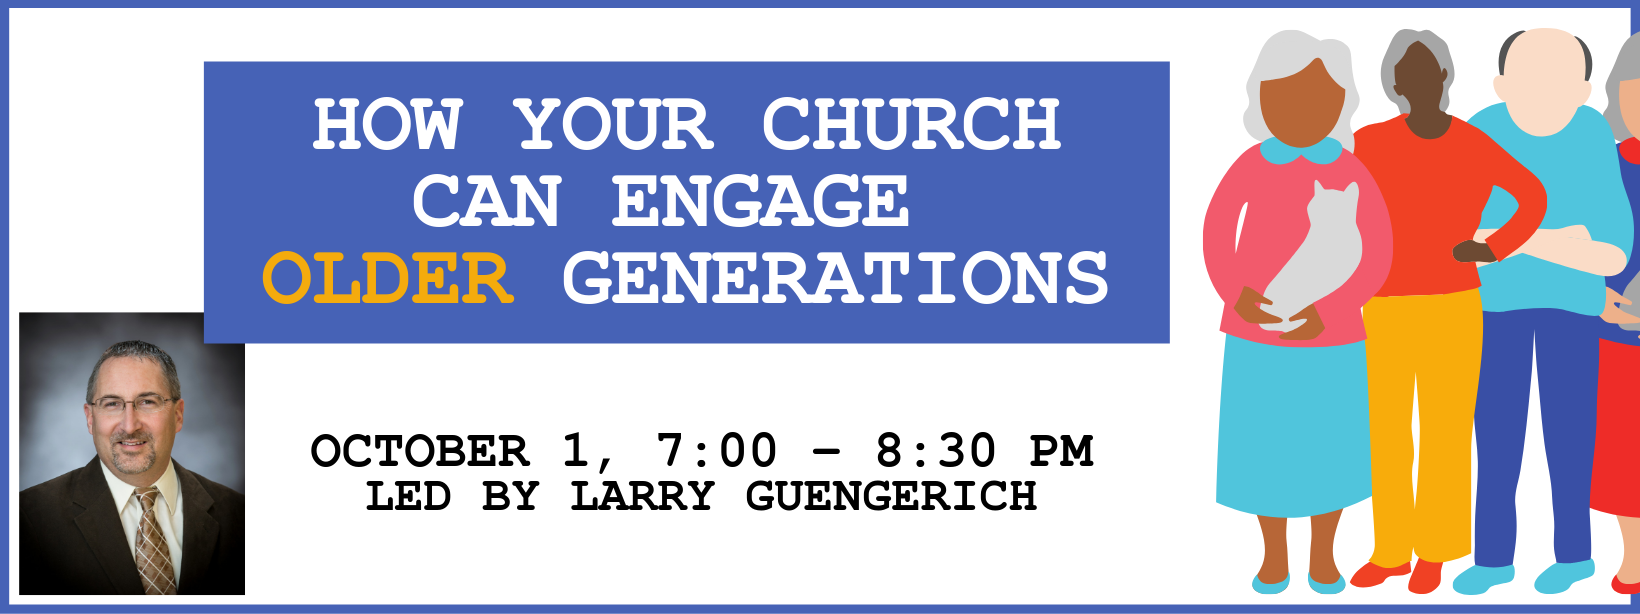 How Your Church Can Engage Older Generations